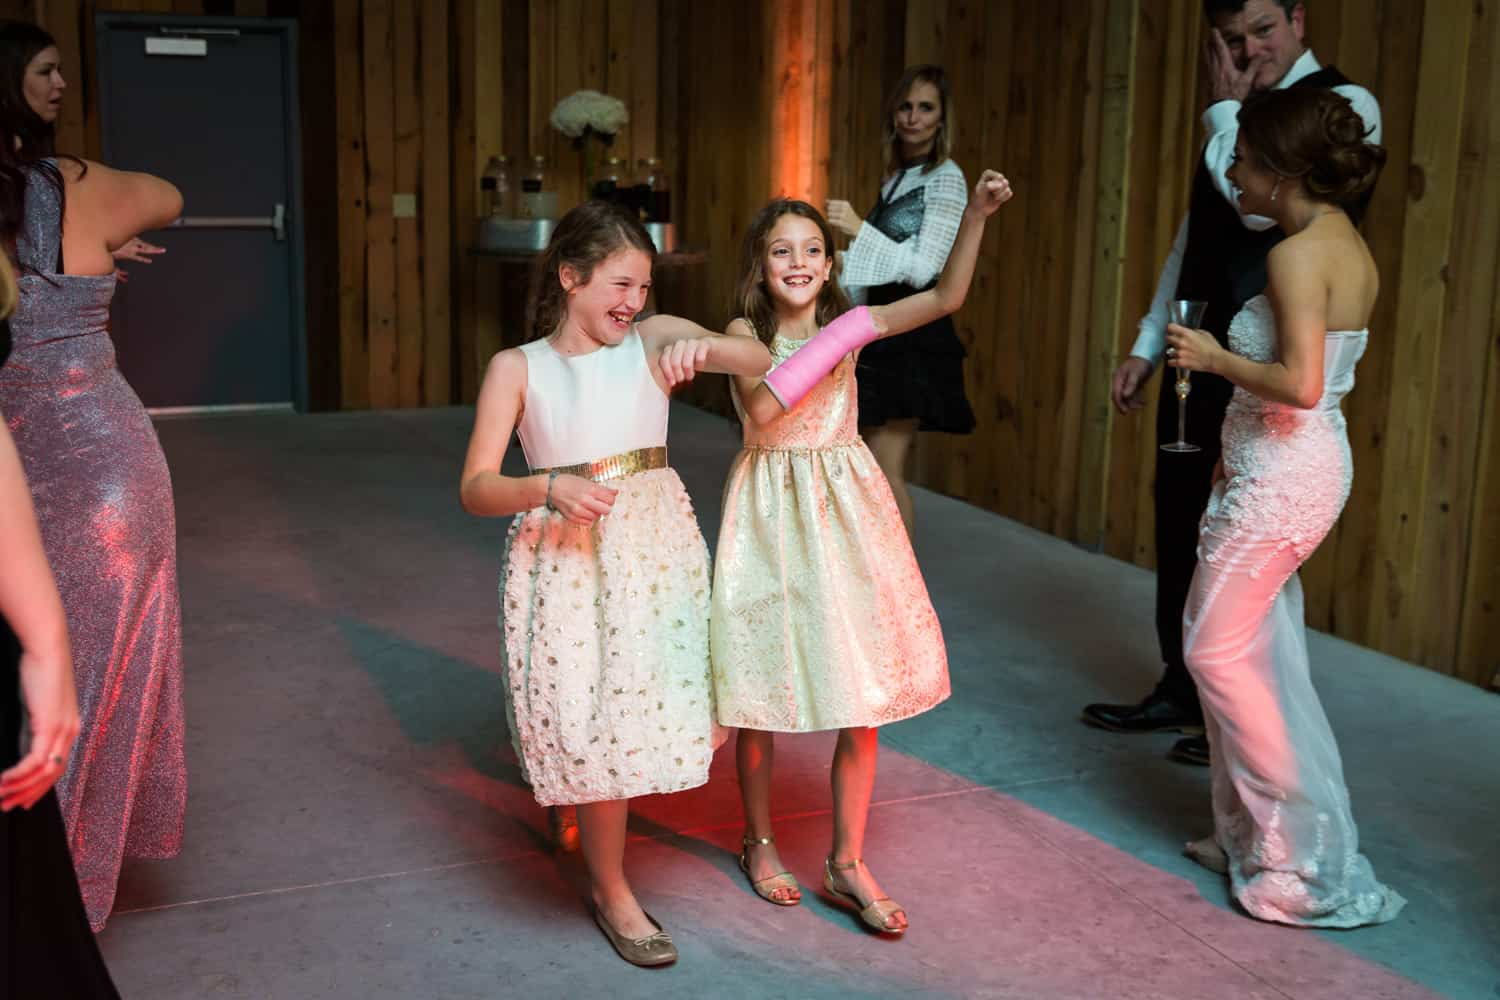 Two little girls dancing during Florida wedding reception